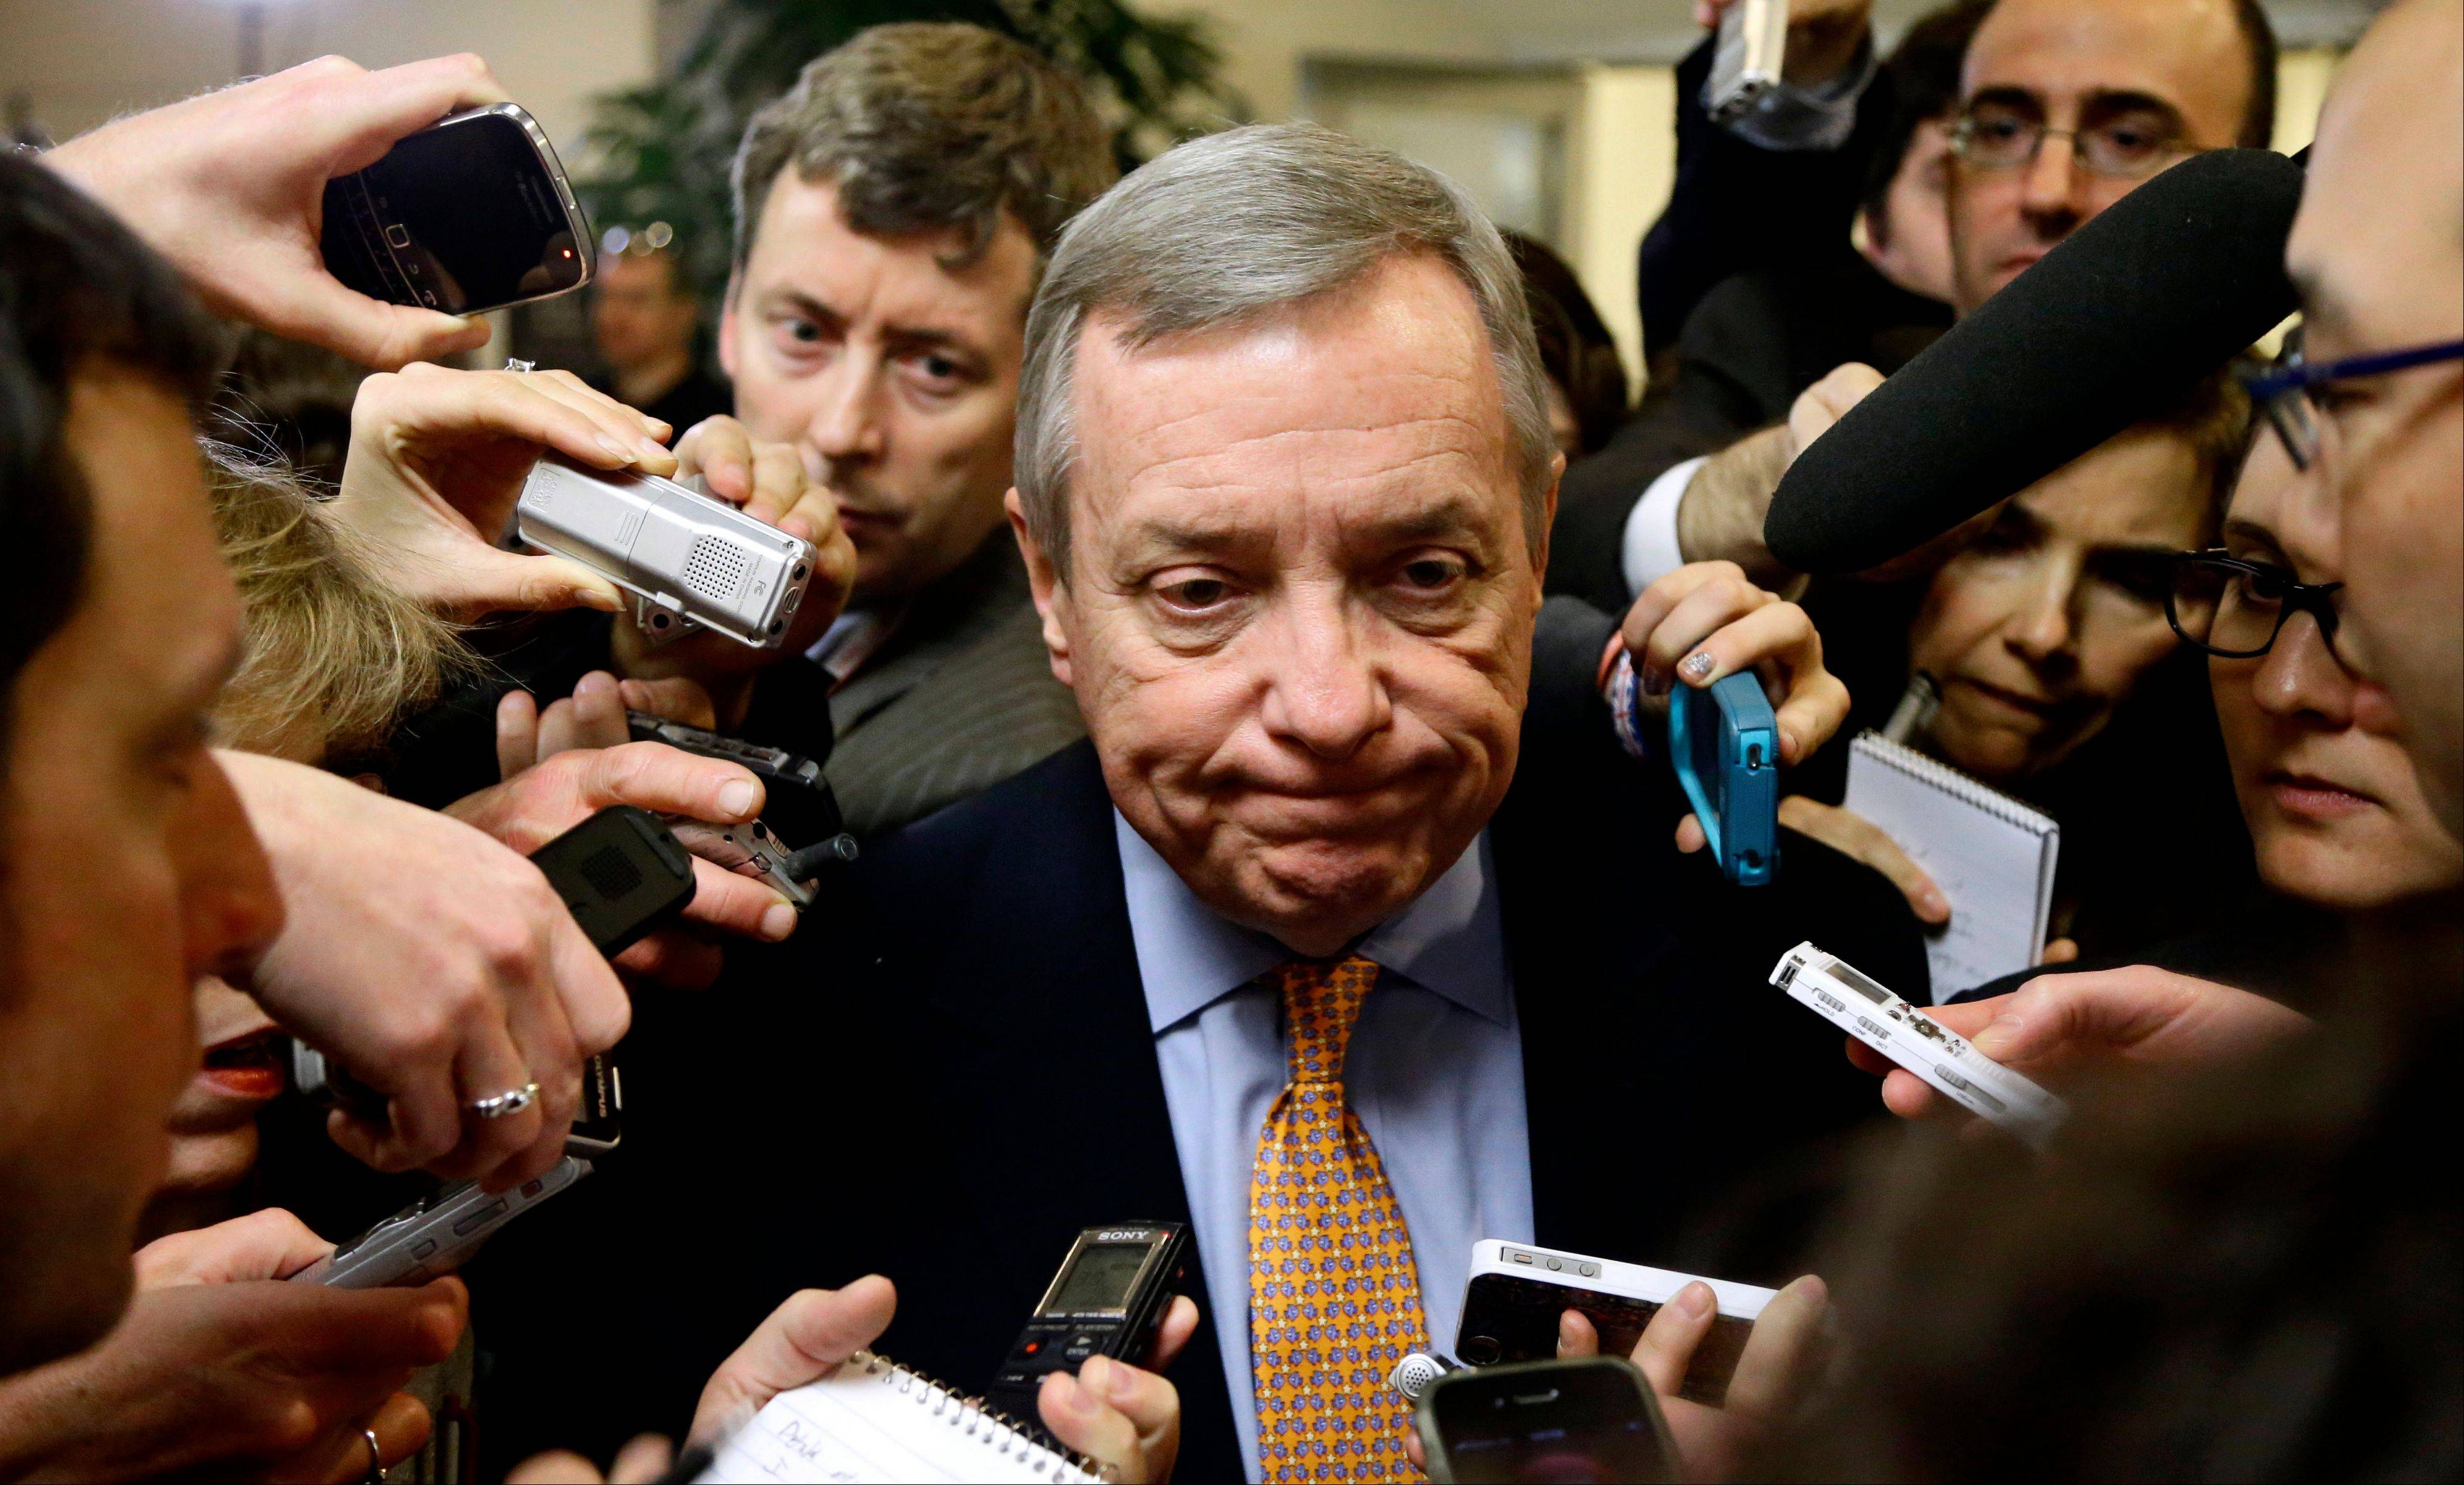 Senate Majority Whip Richard Durbin of Illinois speaks to reporters on Capitol Hill Tuesday, as the lame duck 112th Congress returned.